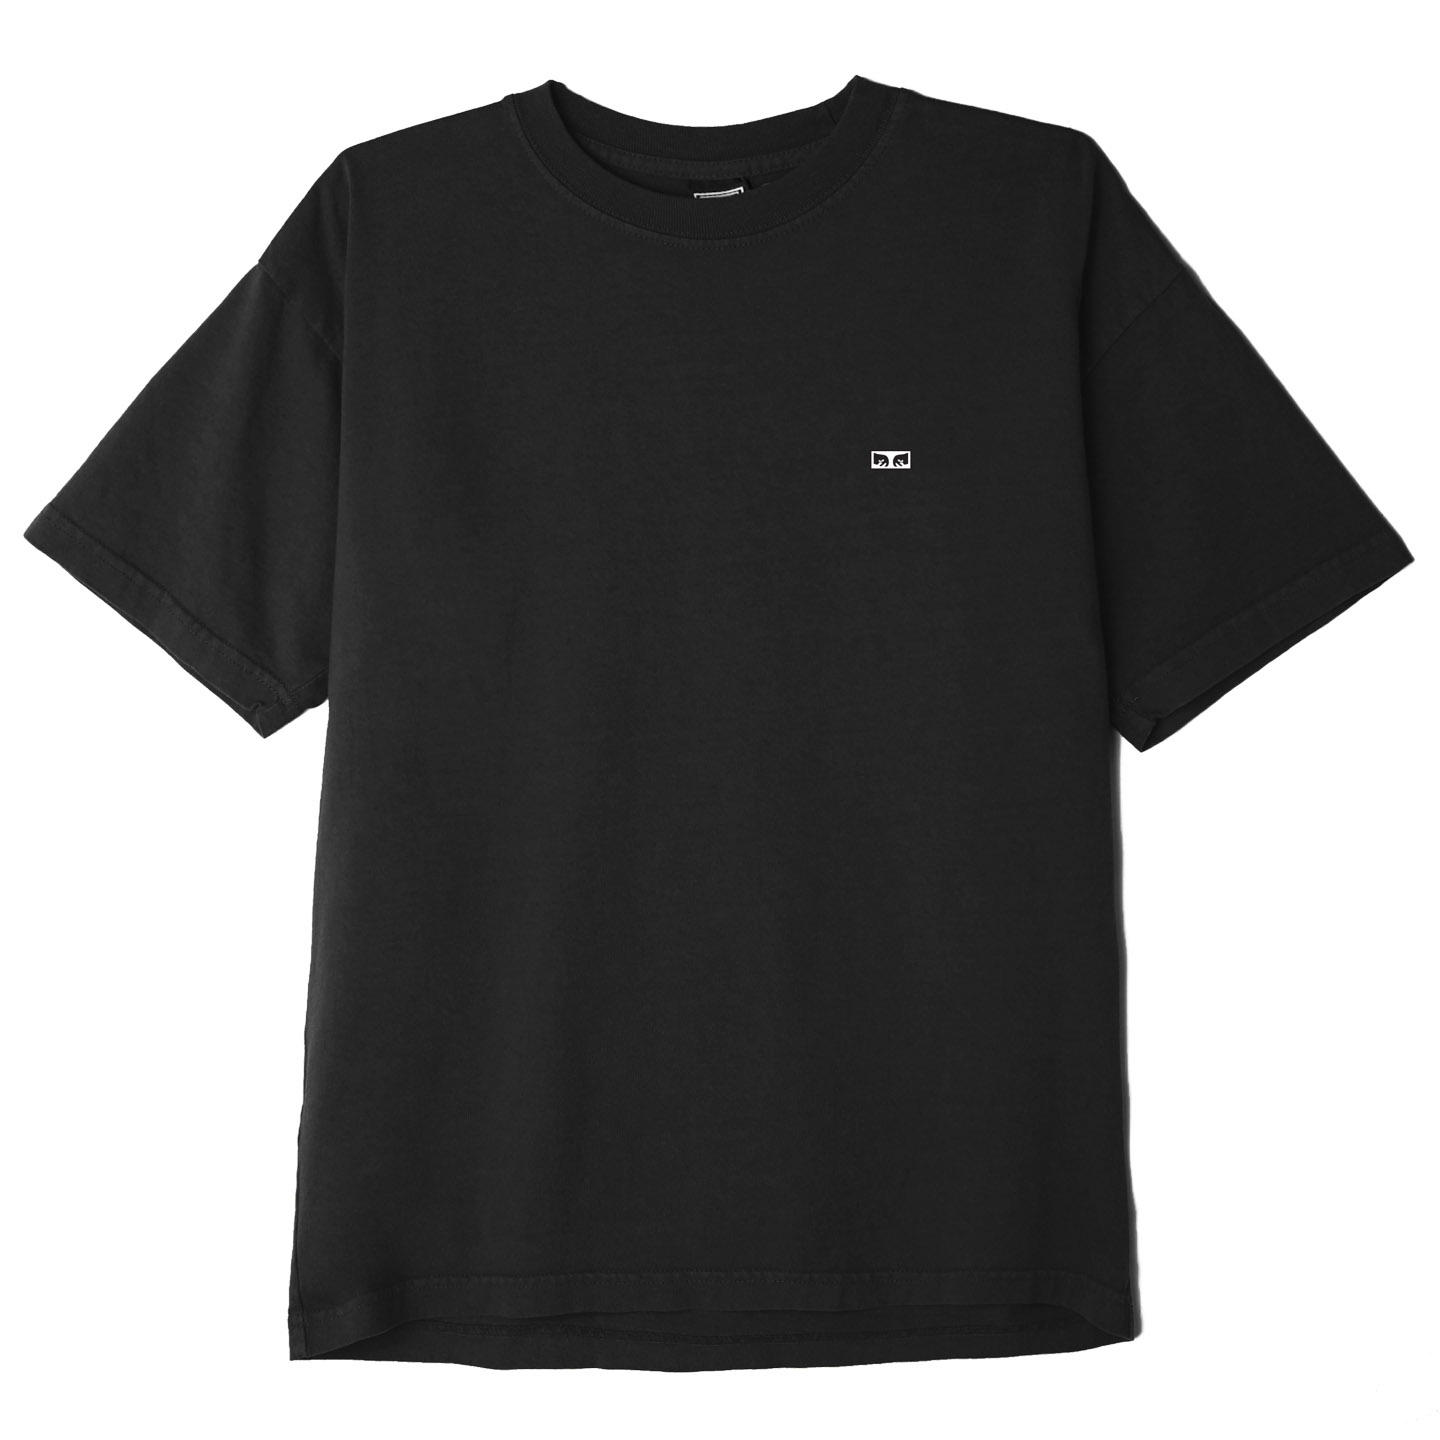 OBEY EYES OF OBEY T-SHIRT - OFF BLACK